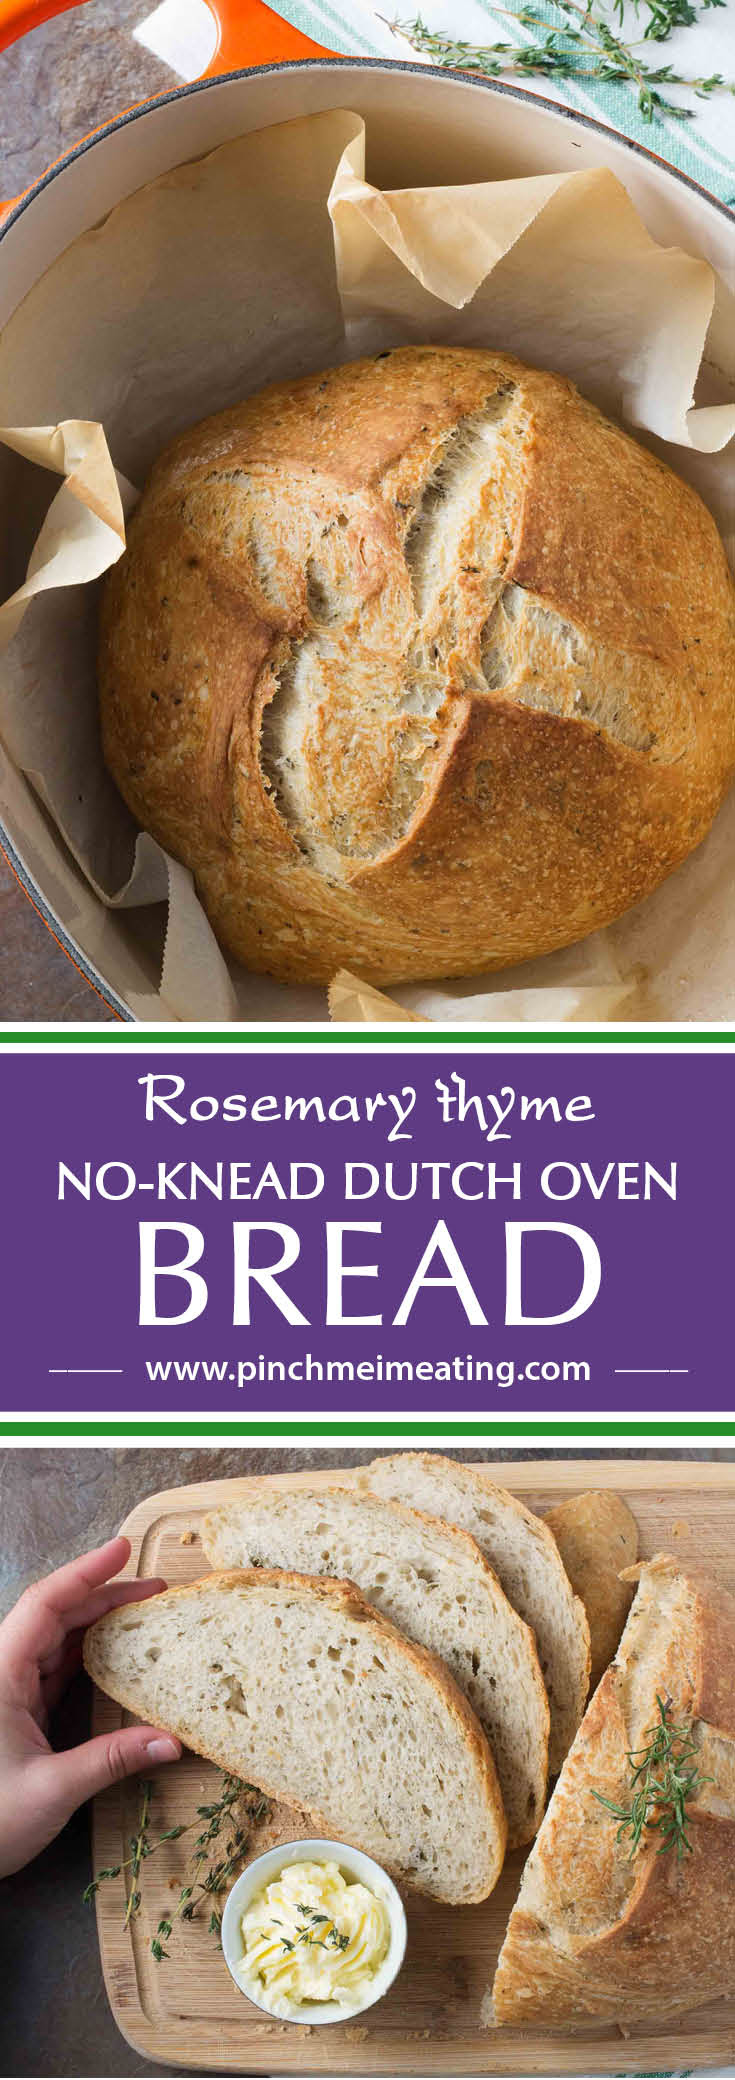 Rosemary Thyme No-Knead Dutch Oven Bread | Pinch me, I'm ...